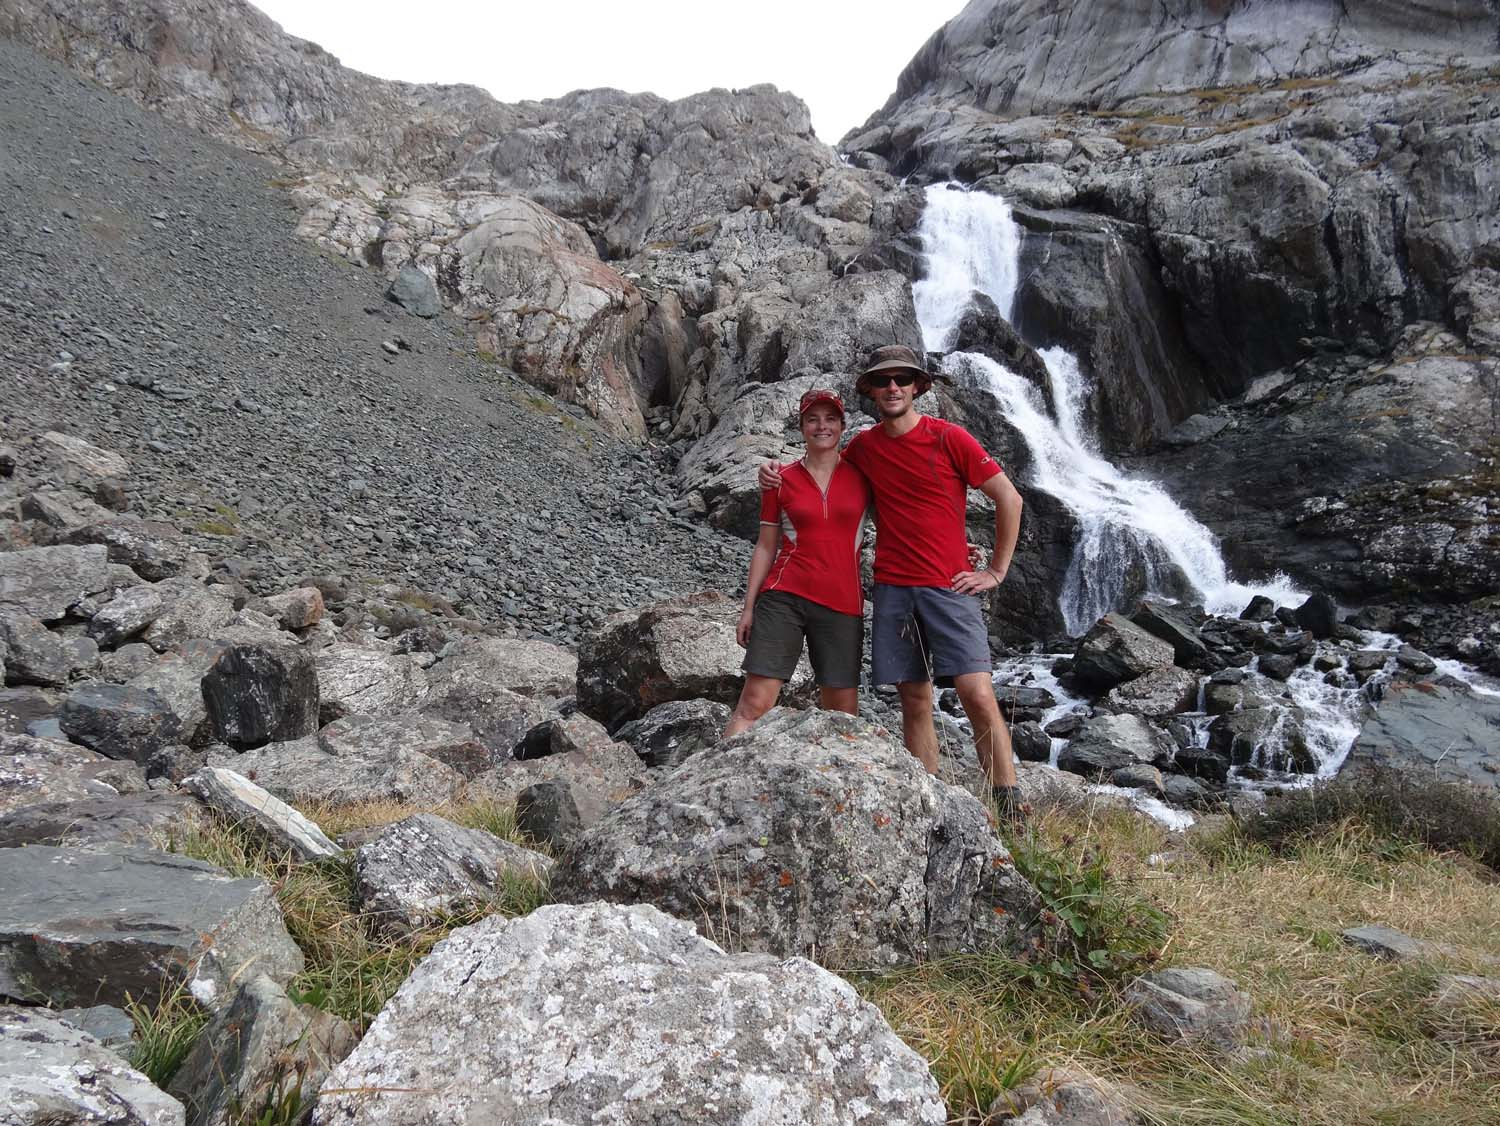 this waterfall comes directly from the beautiful lake, we just have to get up that scree slope behind us to get there